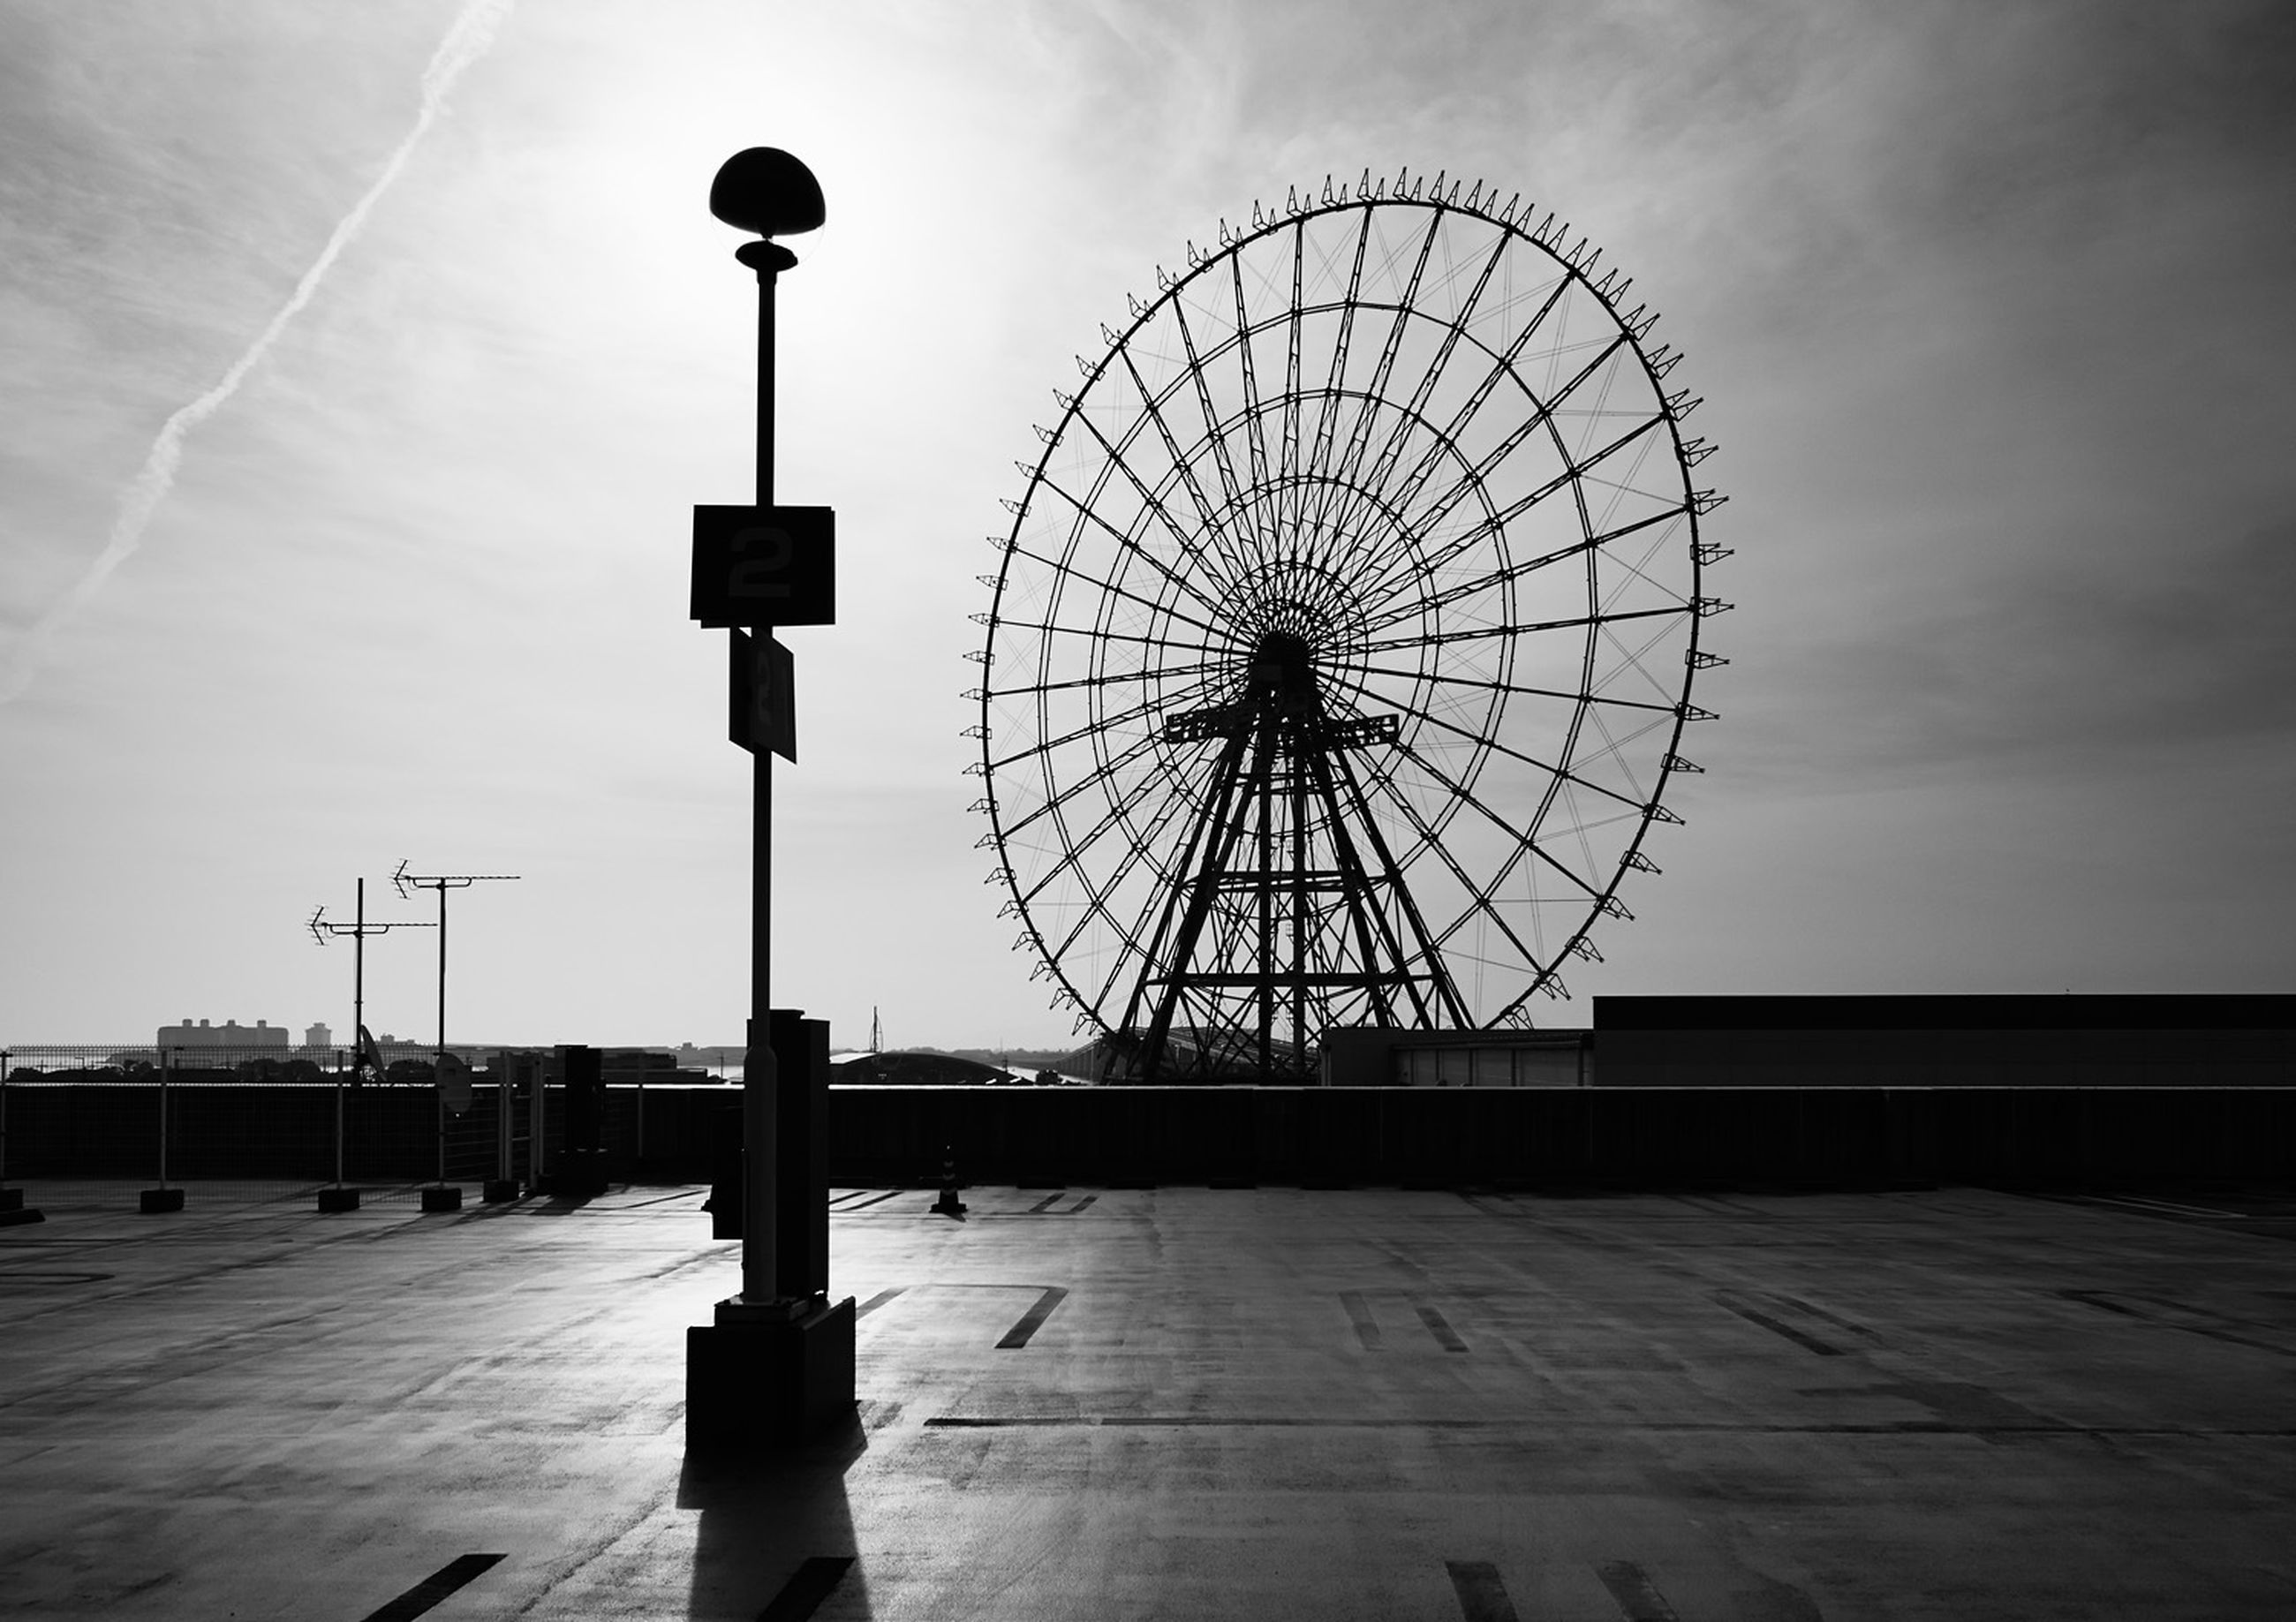 sky, ferris wheel, low angle view, amusement park, amusement park ride, arts culture and entertainment, cloud - sky, silhouette, built structure, street light, outdoors, leisure activity, architecture, cloud, incidental people, bicycle, day, street, road